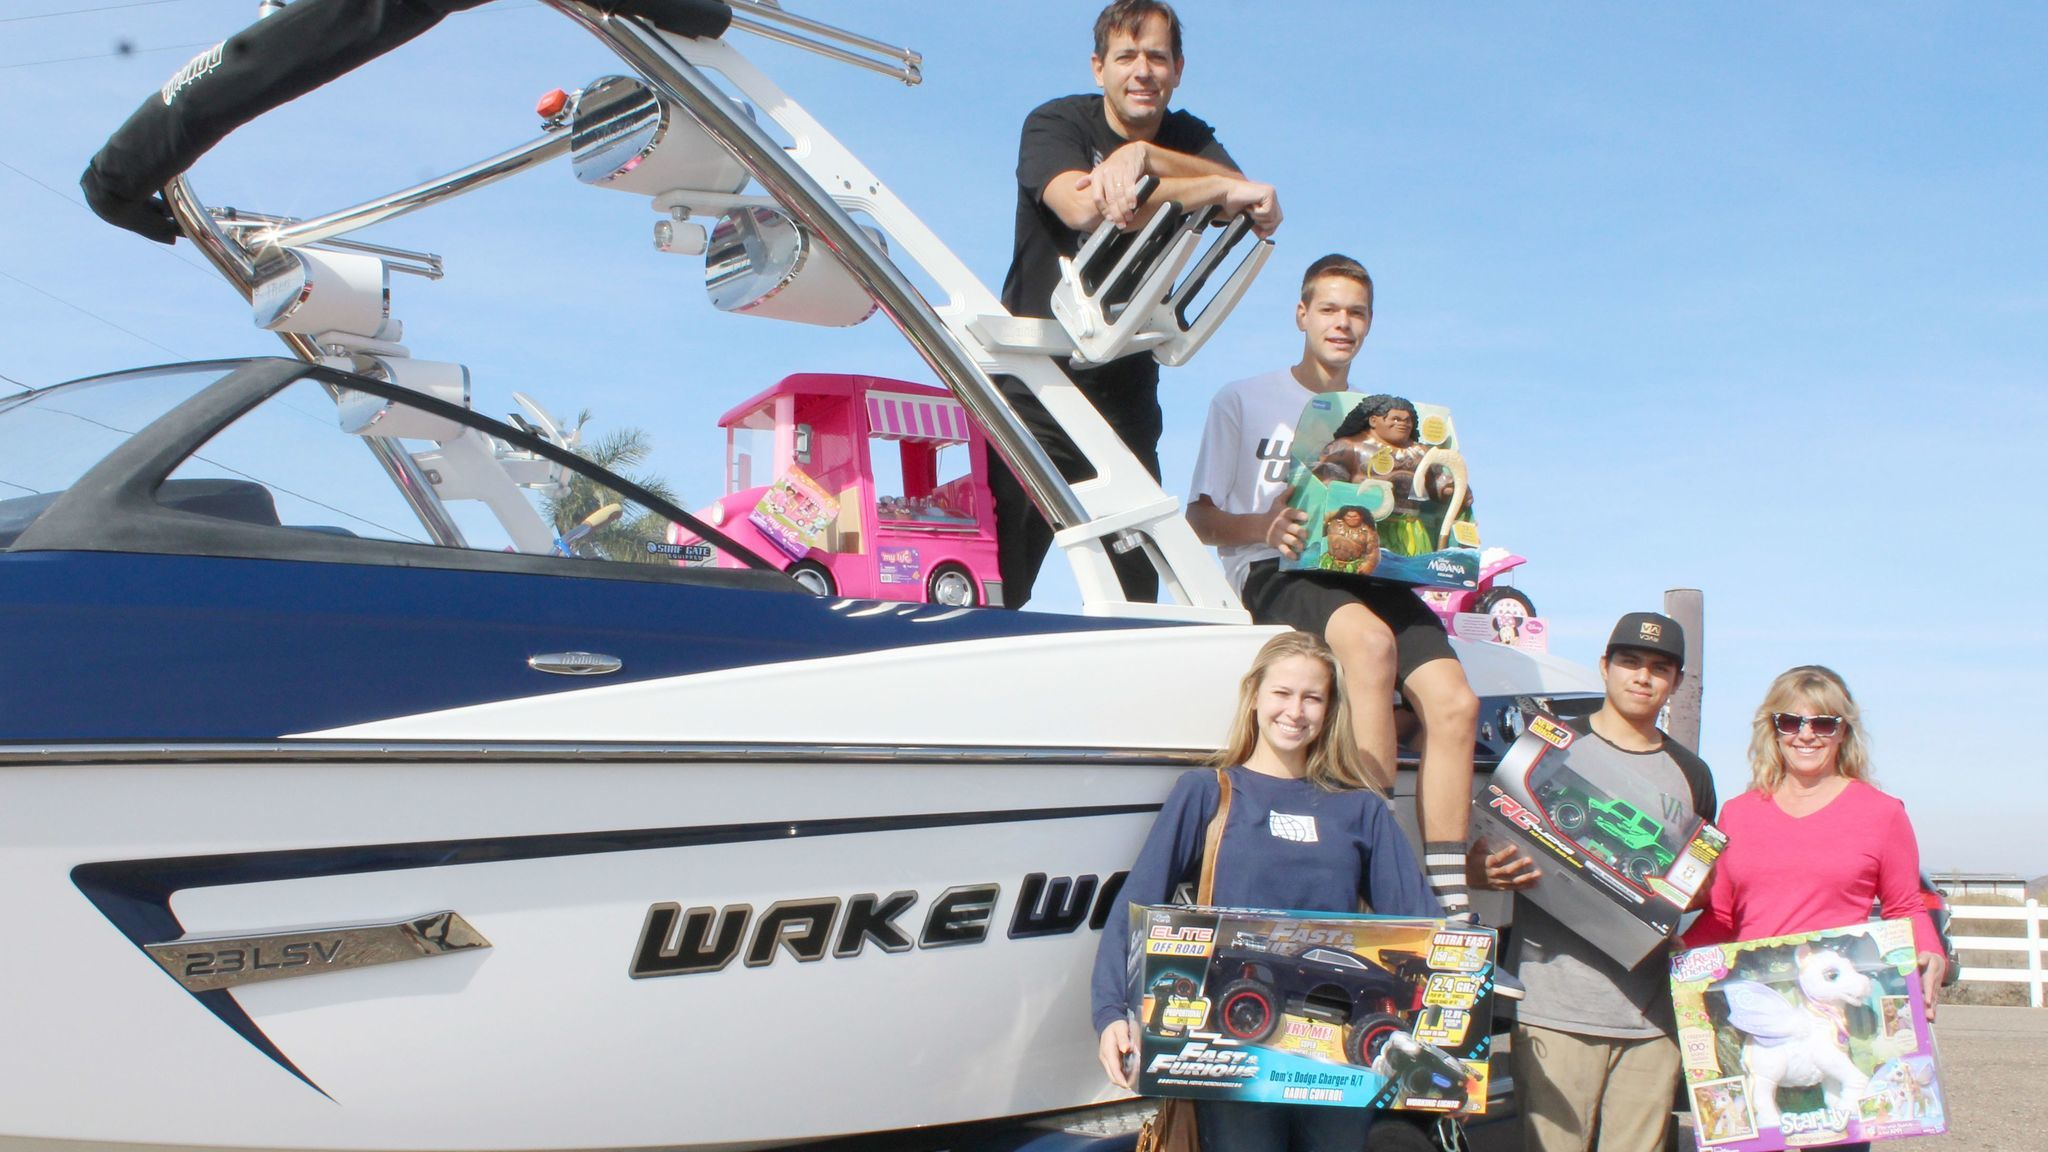 Tammy and David Williams with children Blake, 16, and Paige, 18, and friend Mario Castro, show some of the toys that arrived by boat.